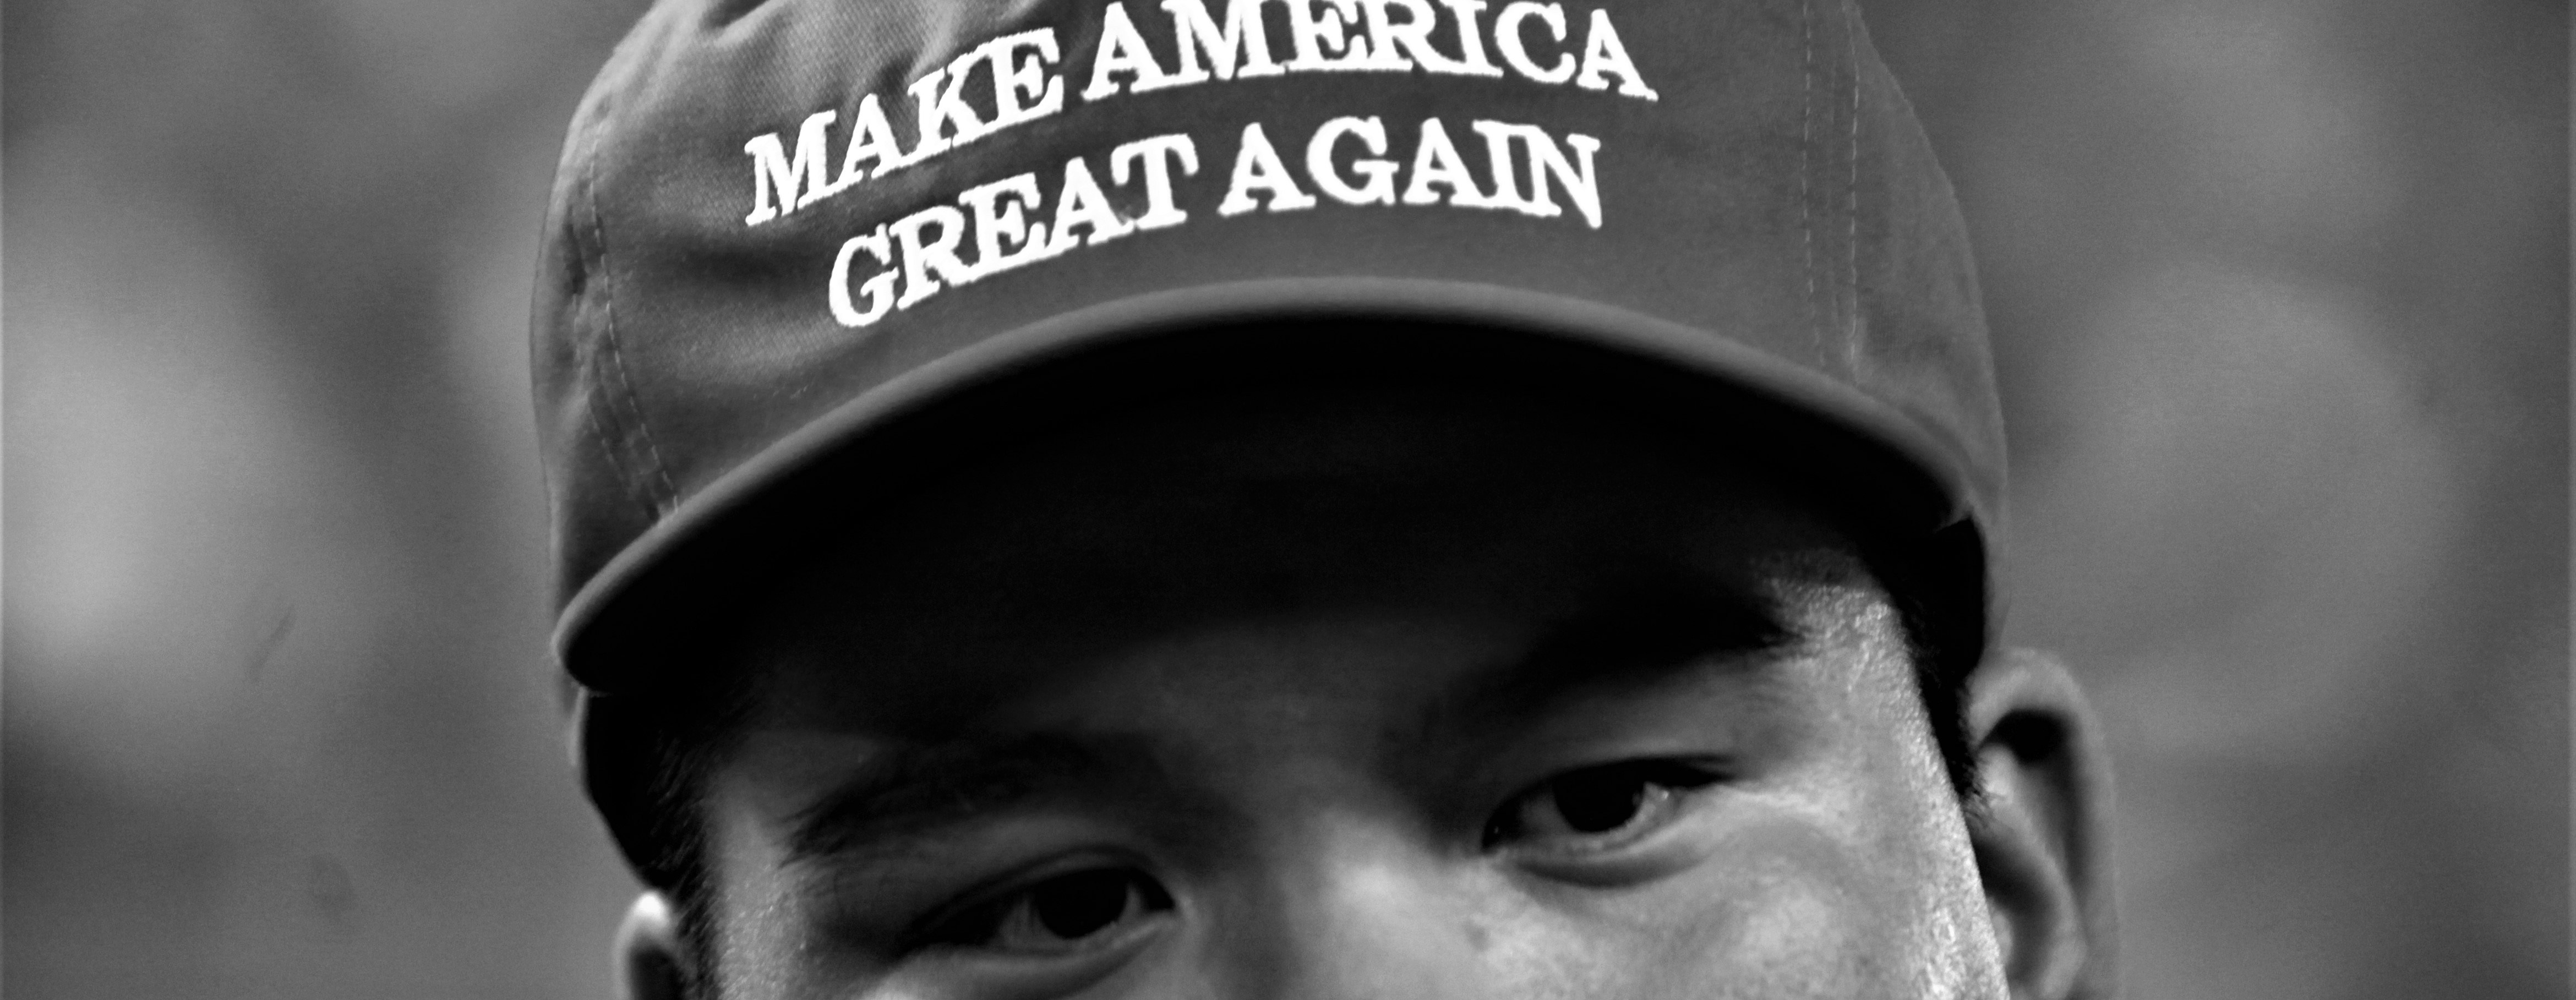 make_america_great_again_hat_27150179783.jpg